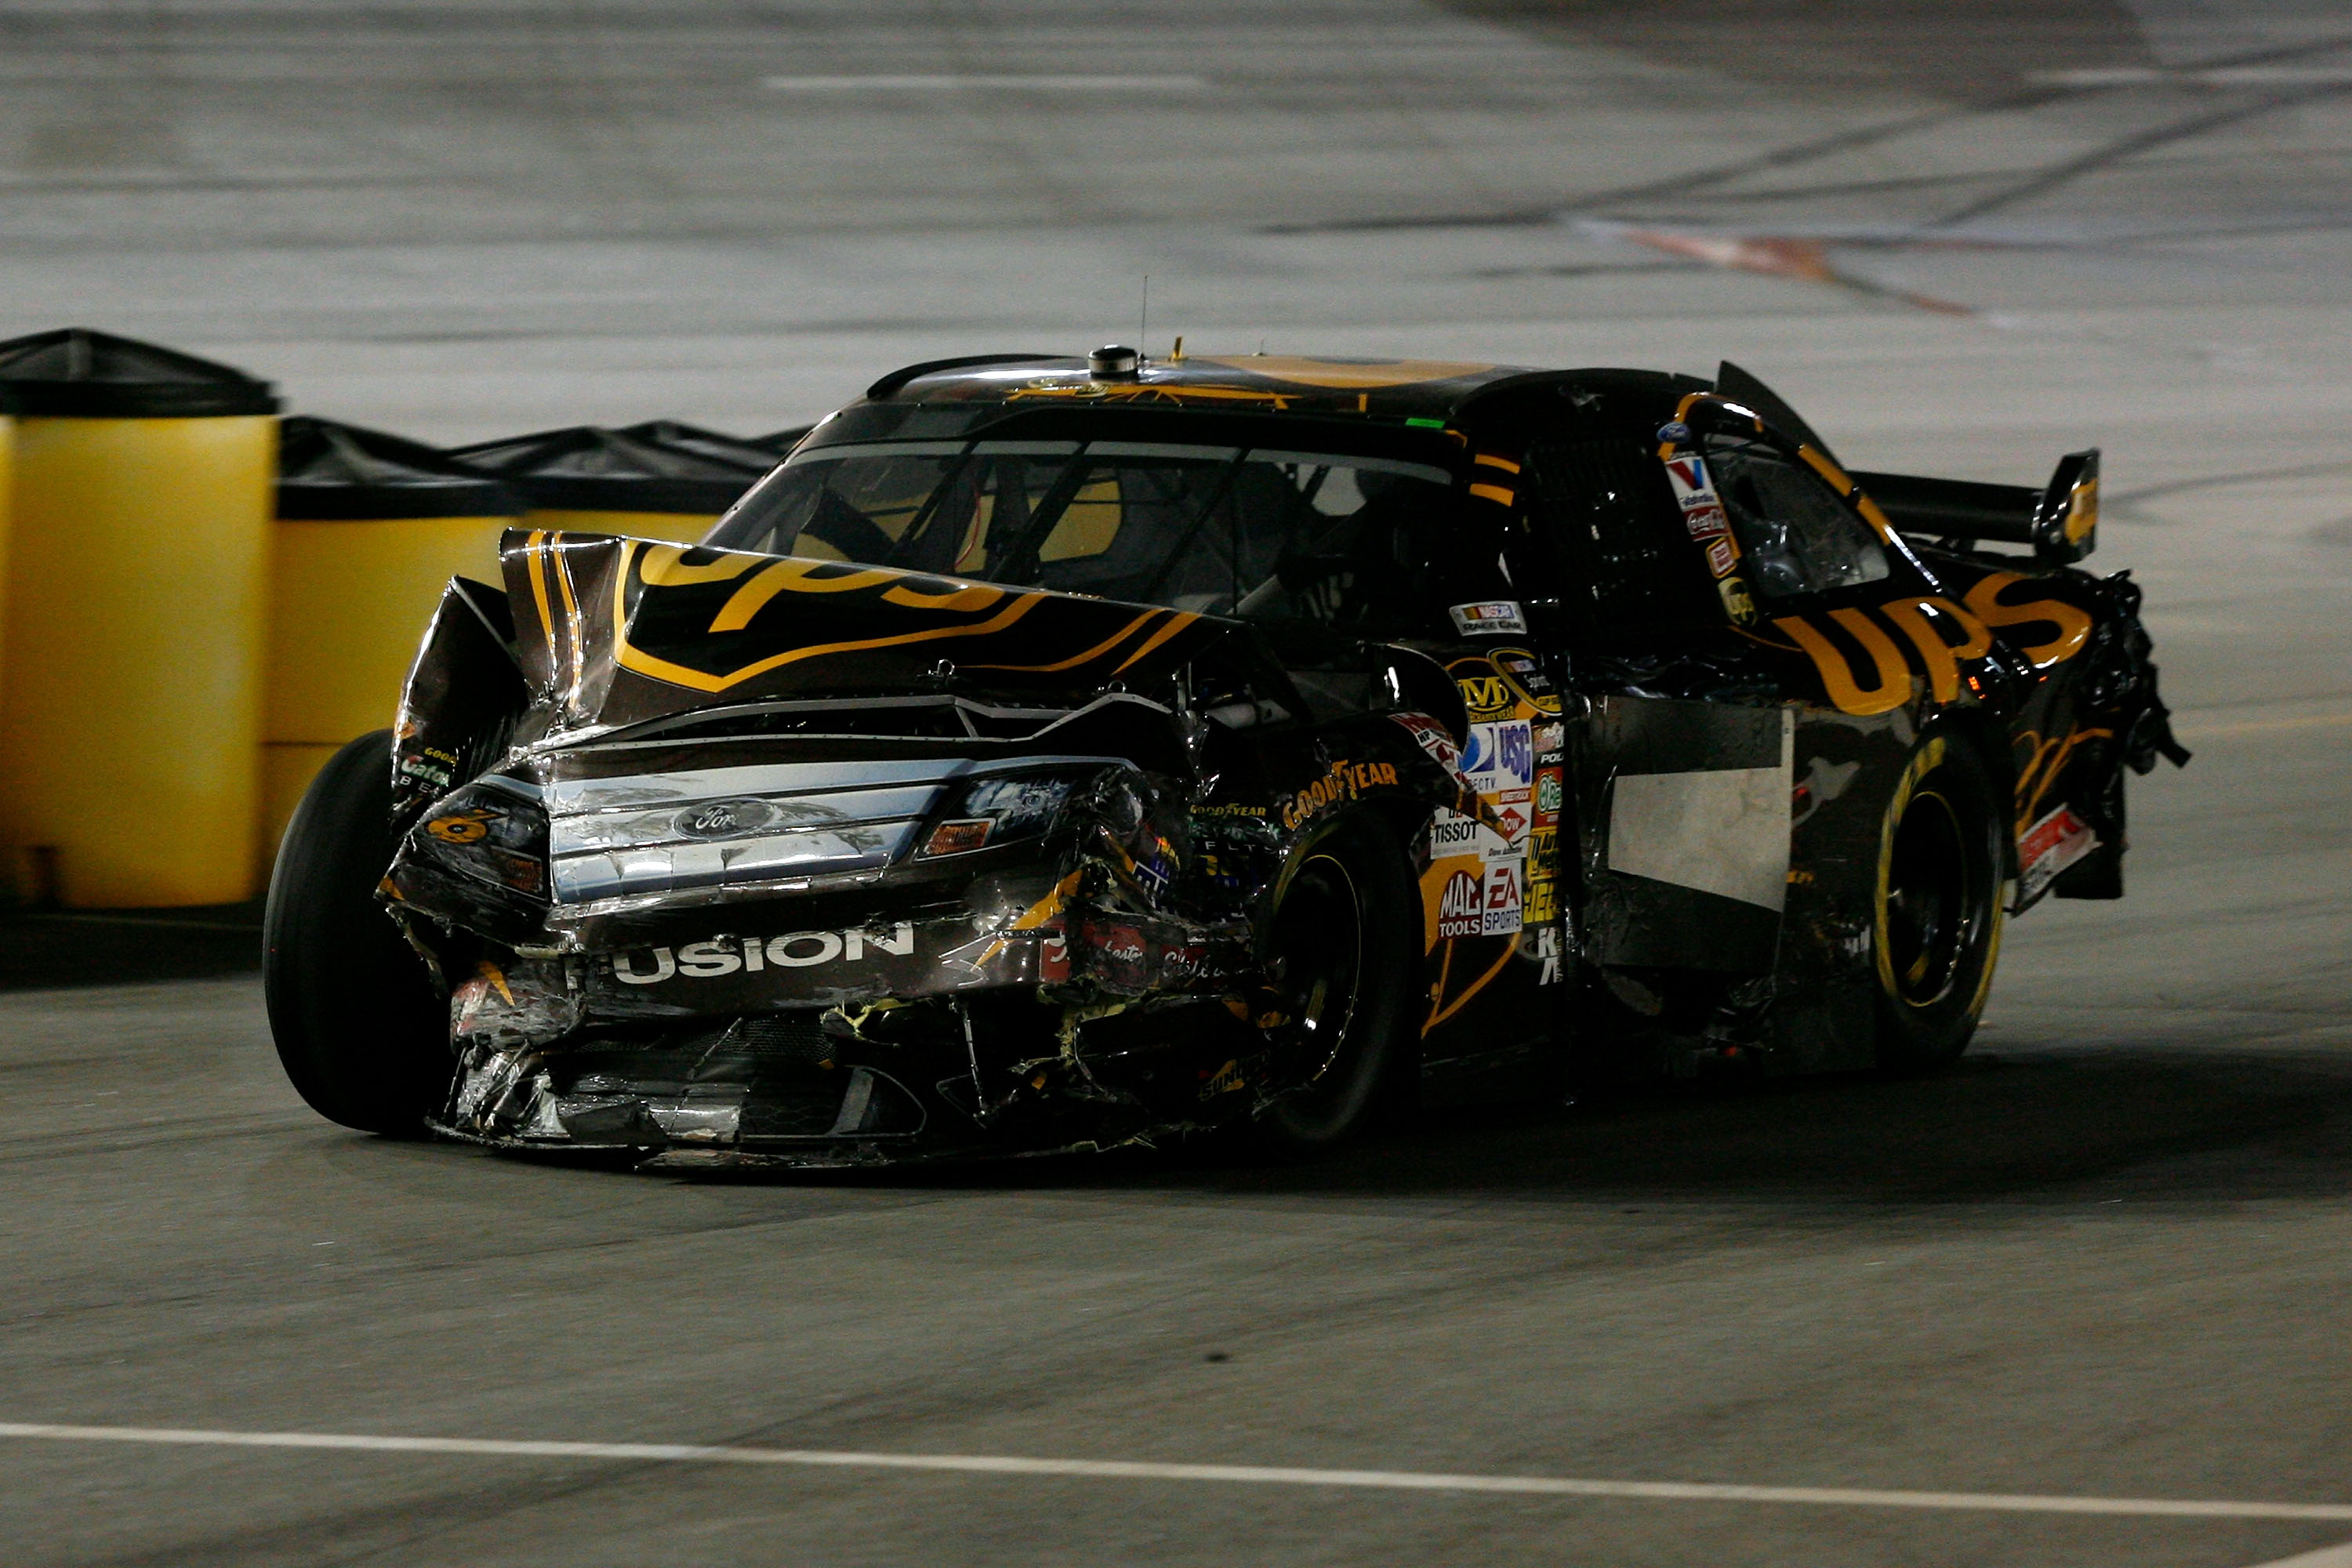 David Ragan runs well on superspeedways but he is a magnet for crashes on the big track.